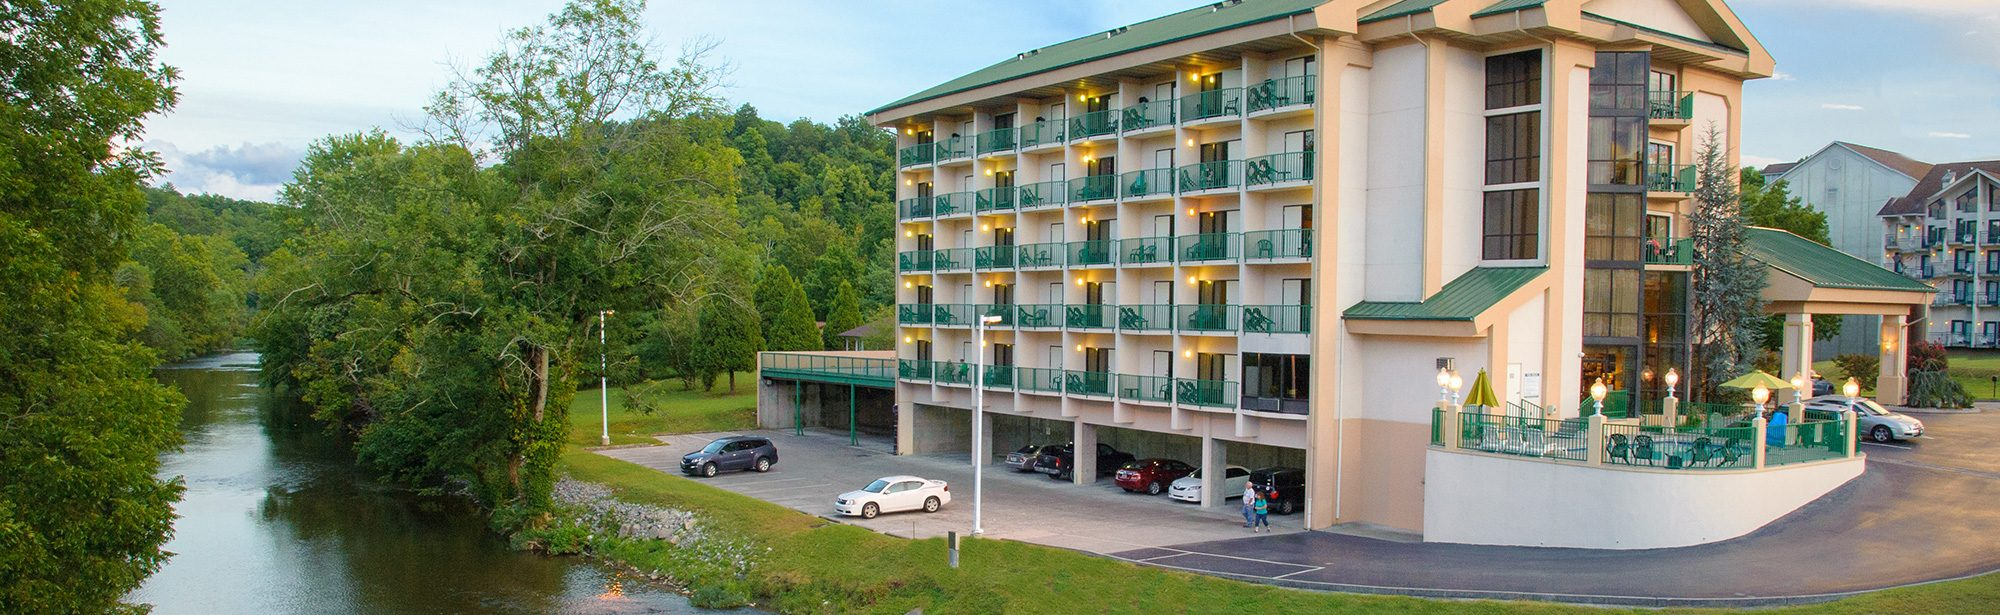 Hotel next to Pigeon River